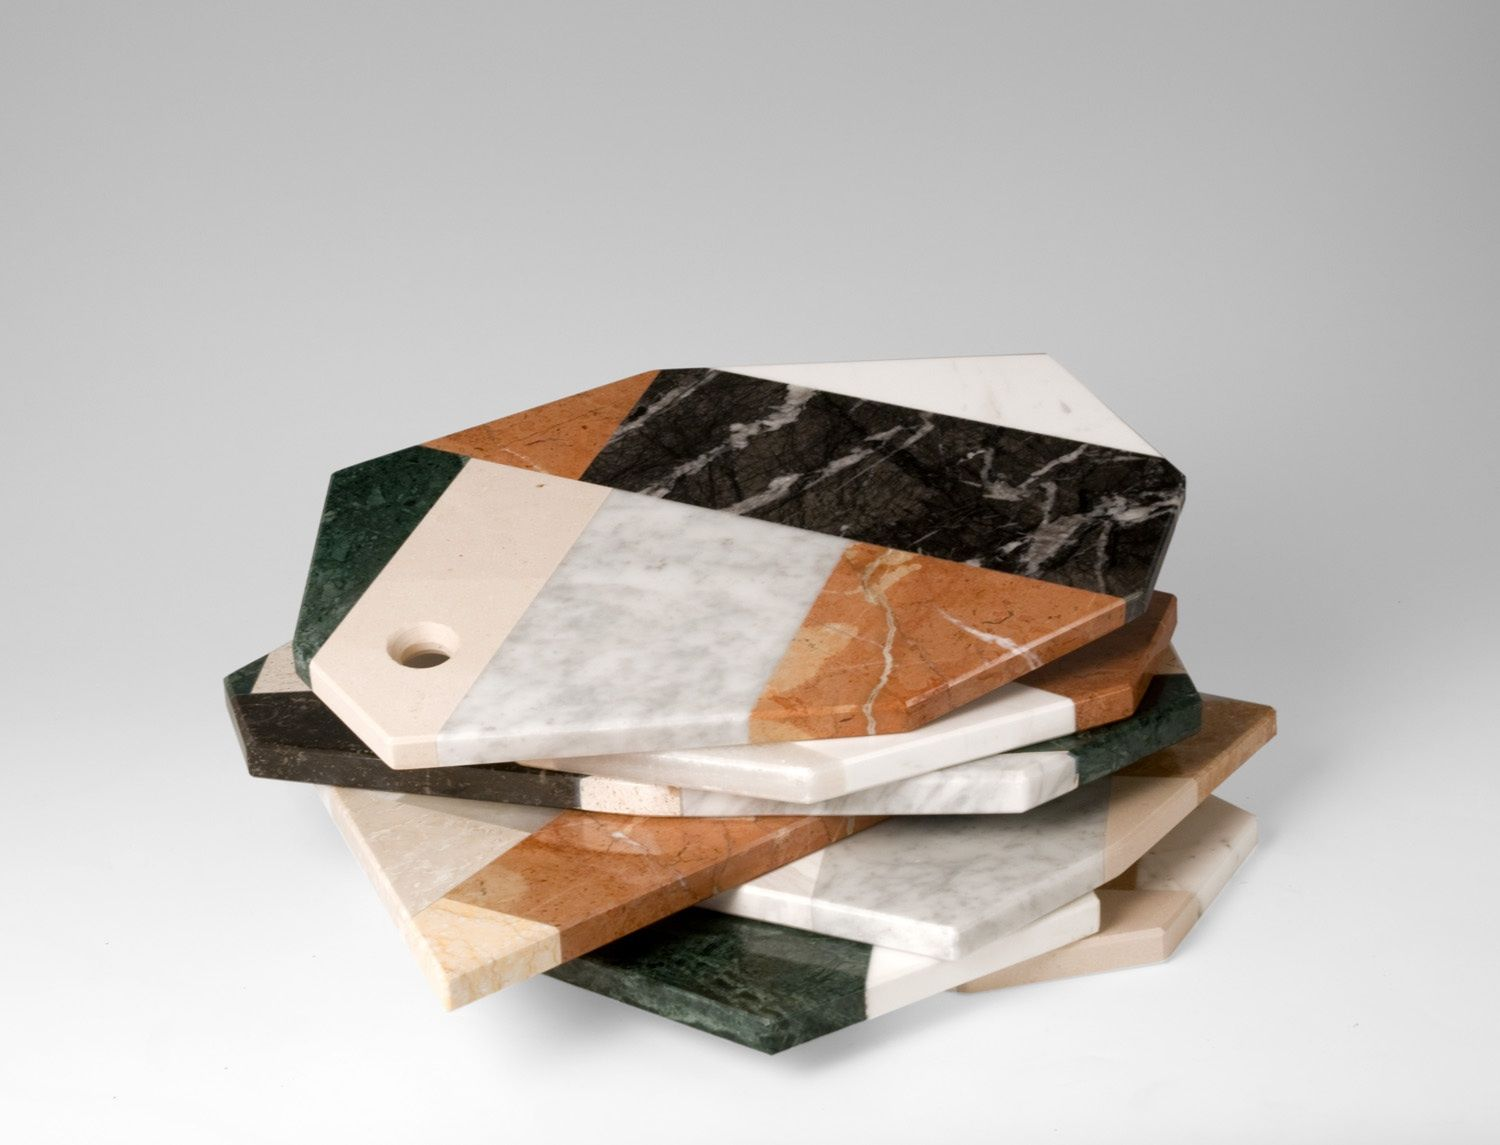 Italian Scrap Marble Serving Tray By Lucia Massari For Mandruzzato  # Muebles Battistin